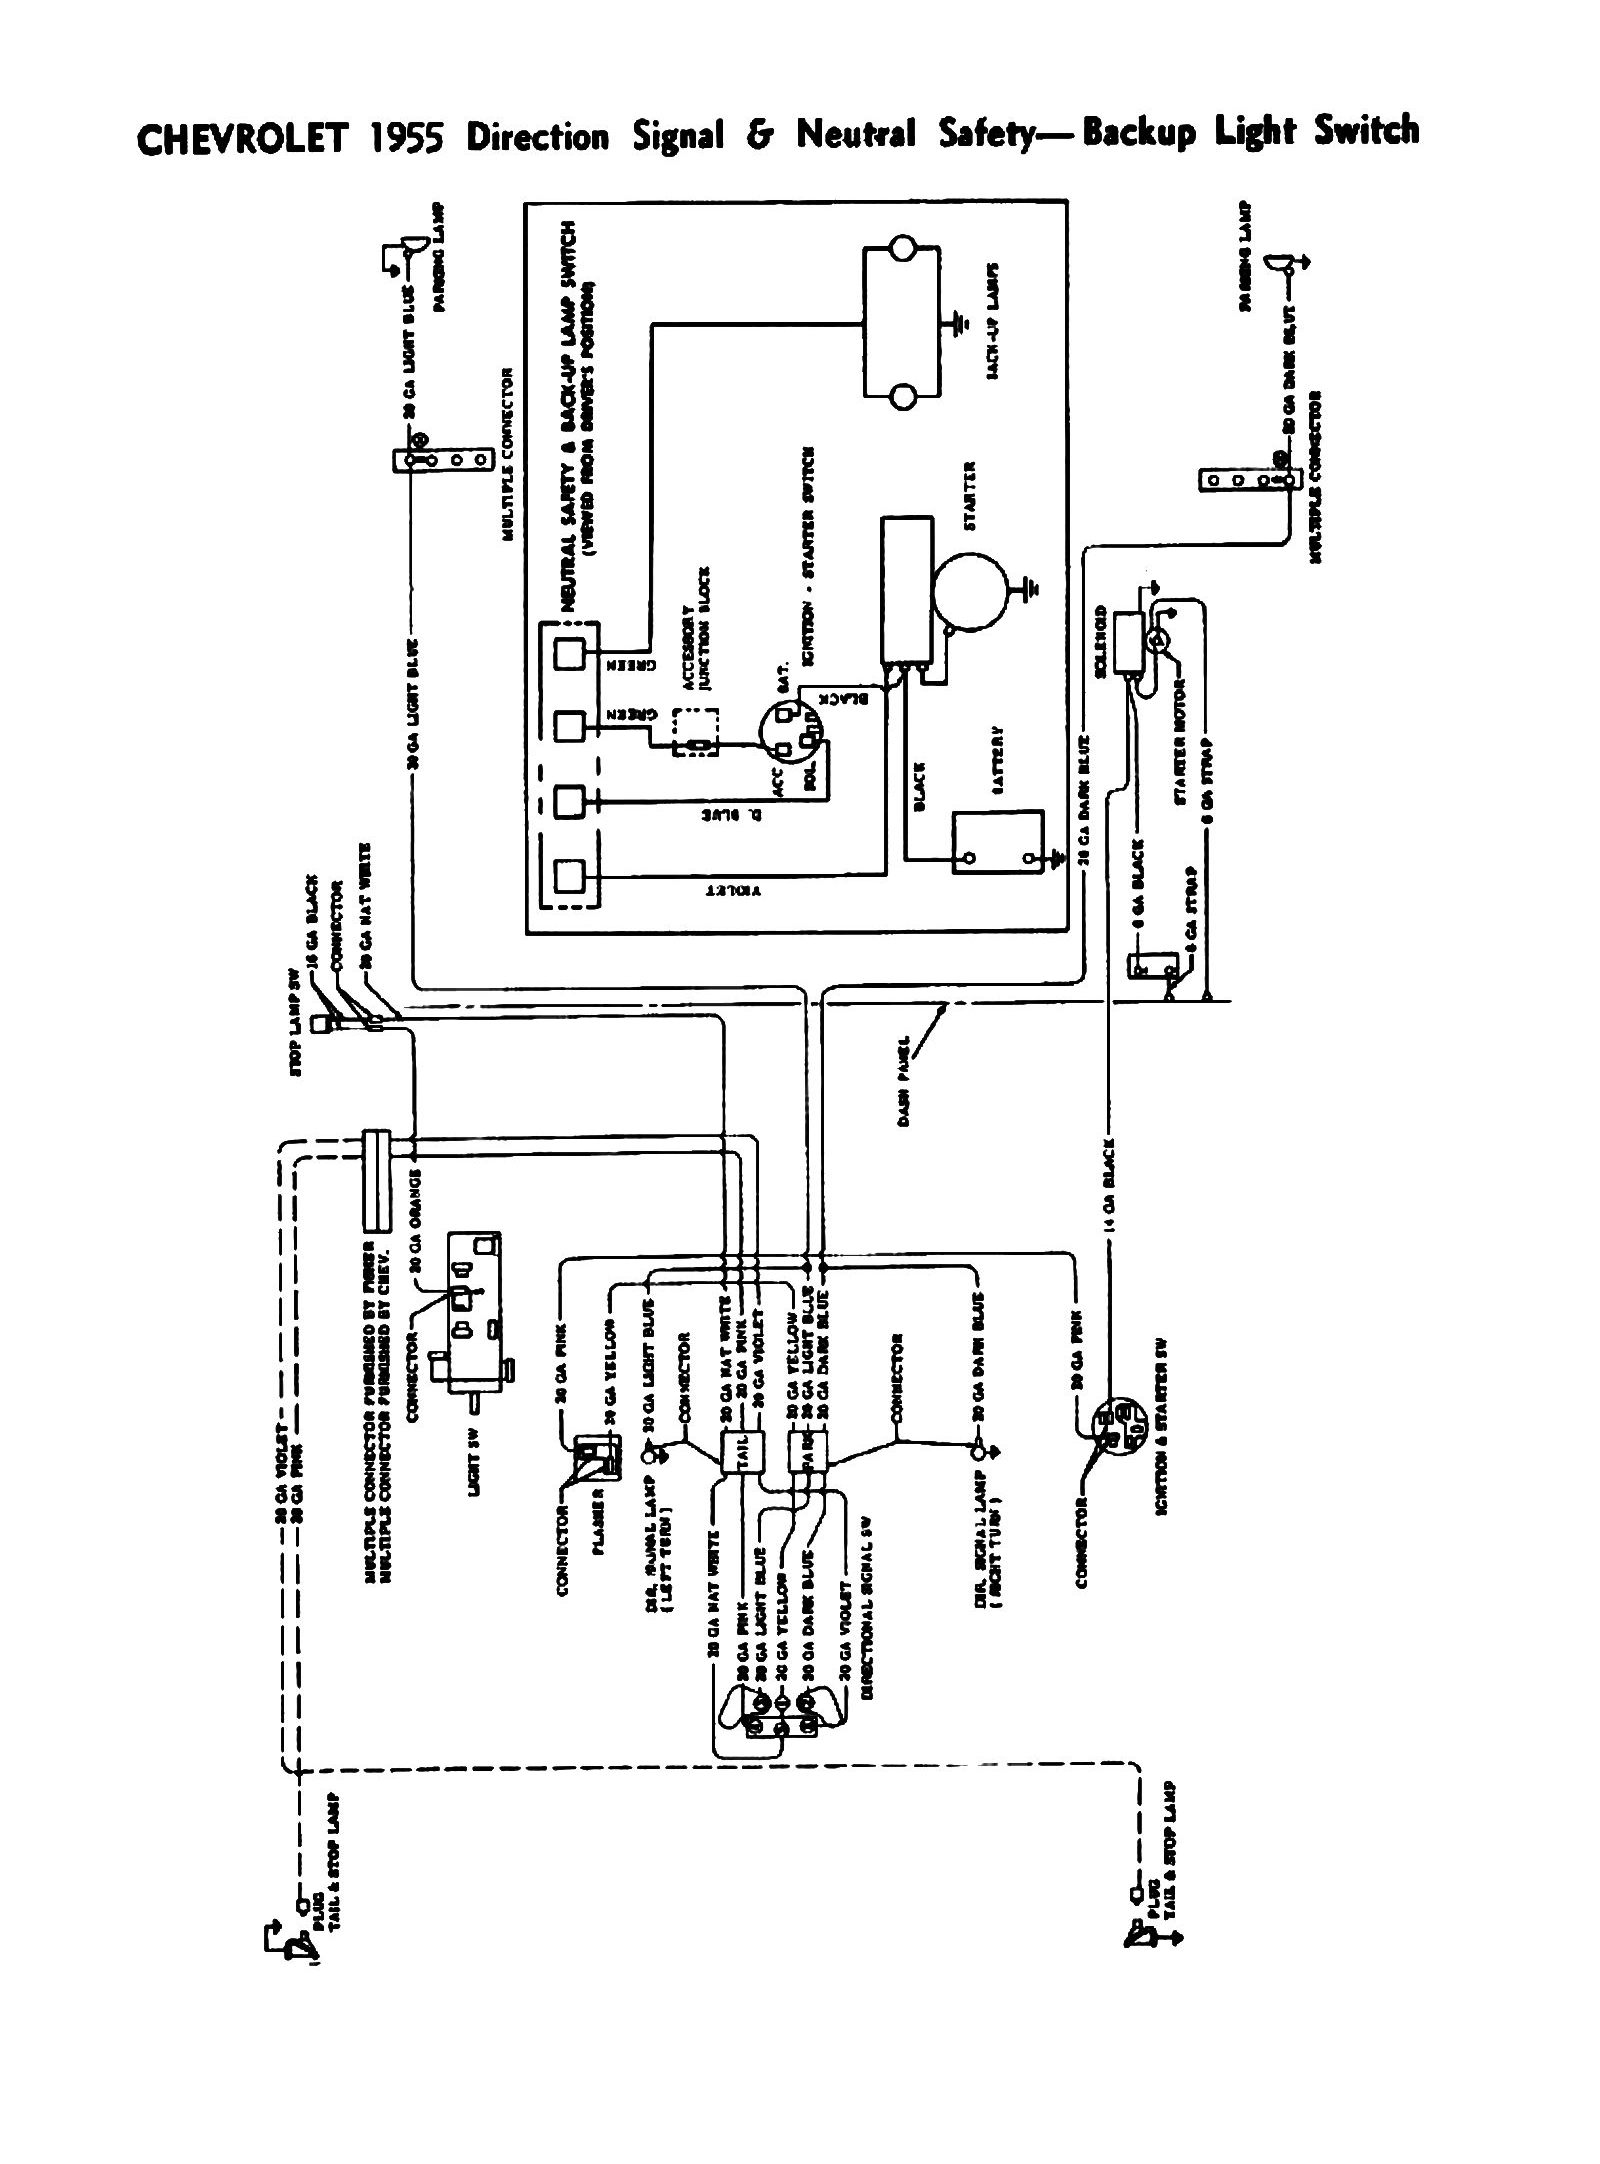 1956 chevy pickup wiring diagram with Showthread on Frontaxle further 1955 Chrysler Wiring Diagram also Yamaha Outboard Trim Gauge Wiring besides 1979 Corvette Tach Filter Picture likewise 936701 Voltage Regulator Problems.